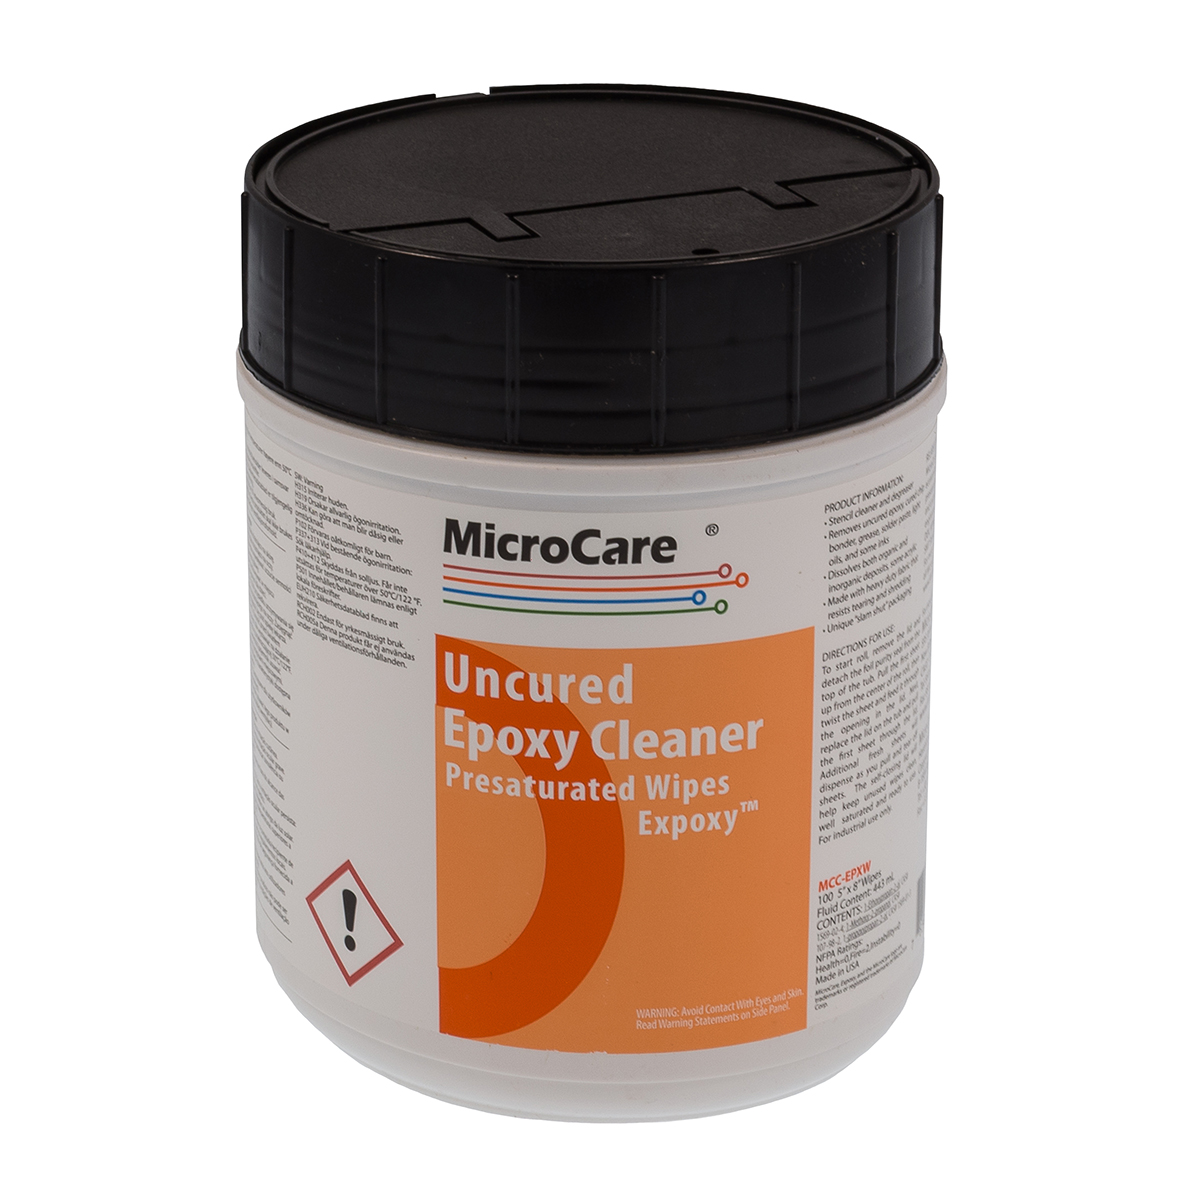 MicroCare Epoxy Pre-Saturated Wipes